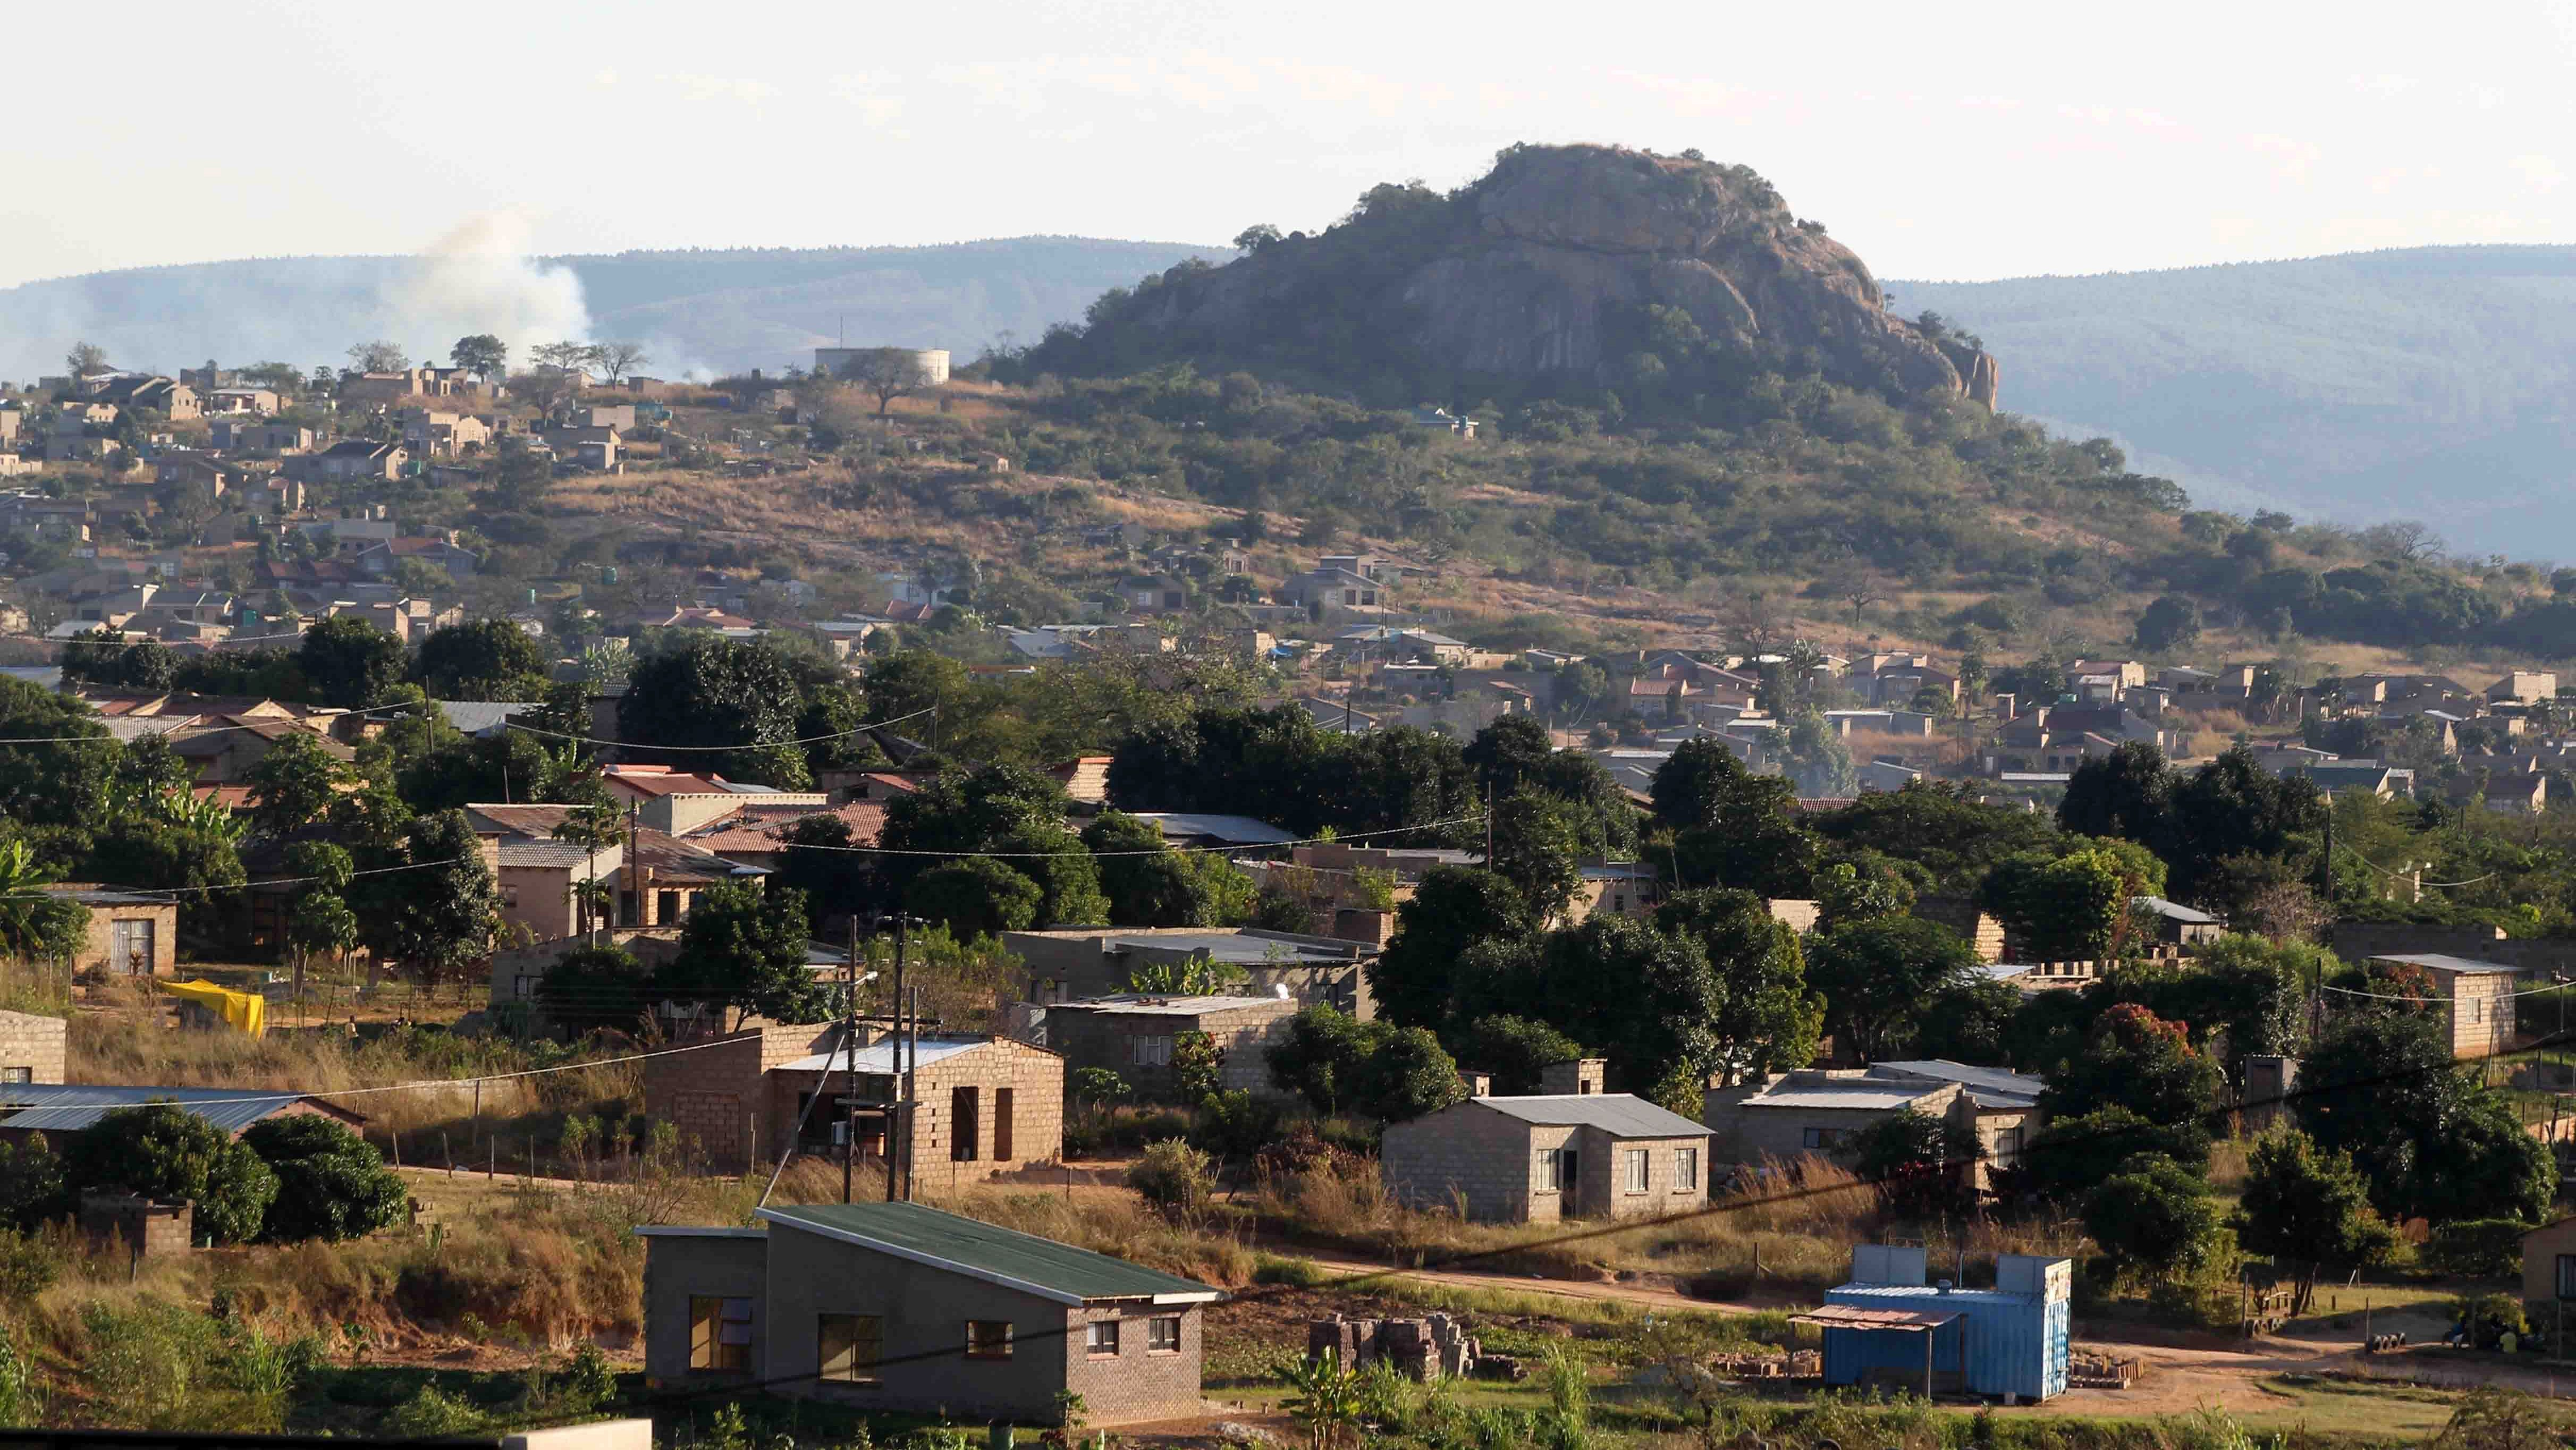 General view of one of the many townships of the Mpumalanga Province, South Africa.